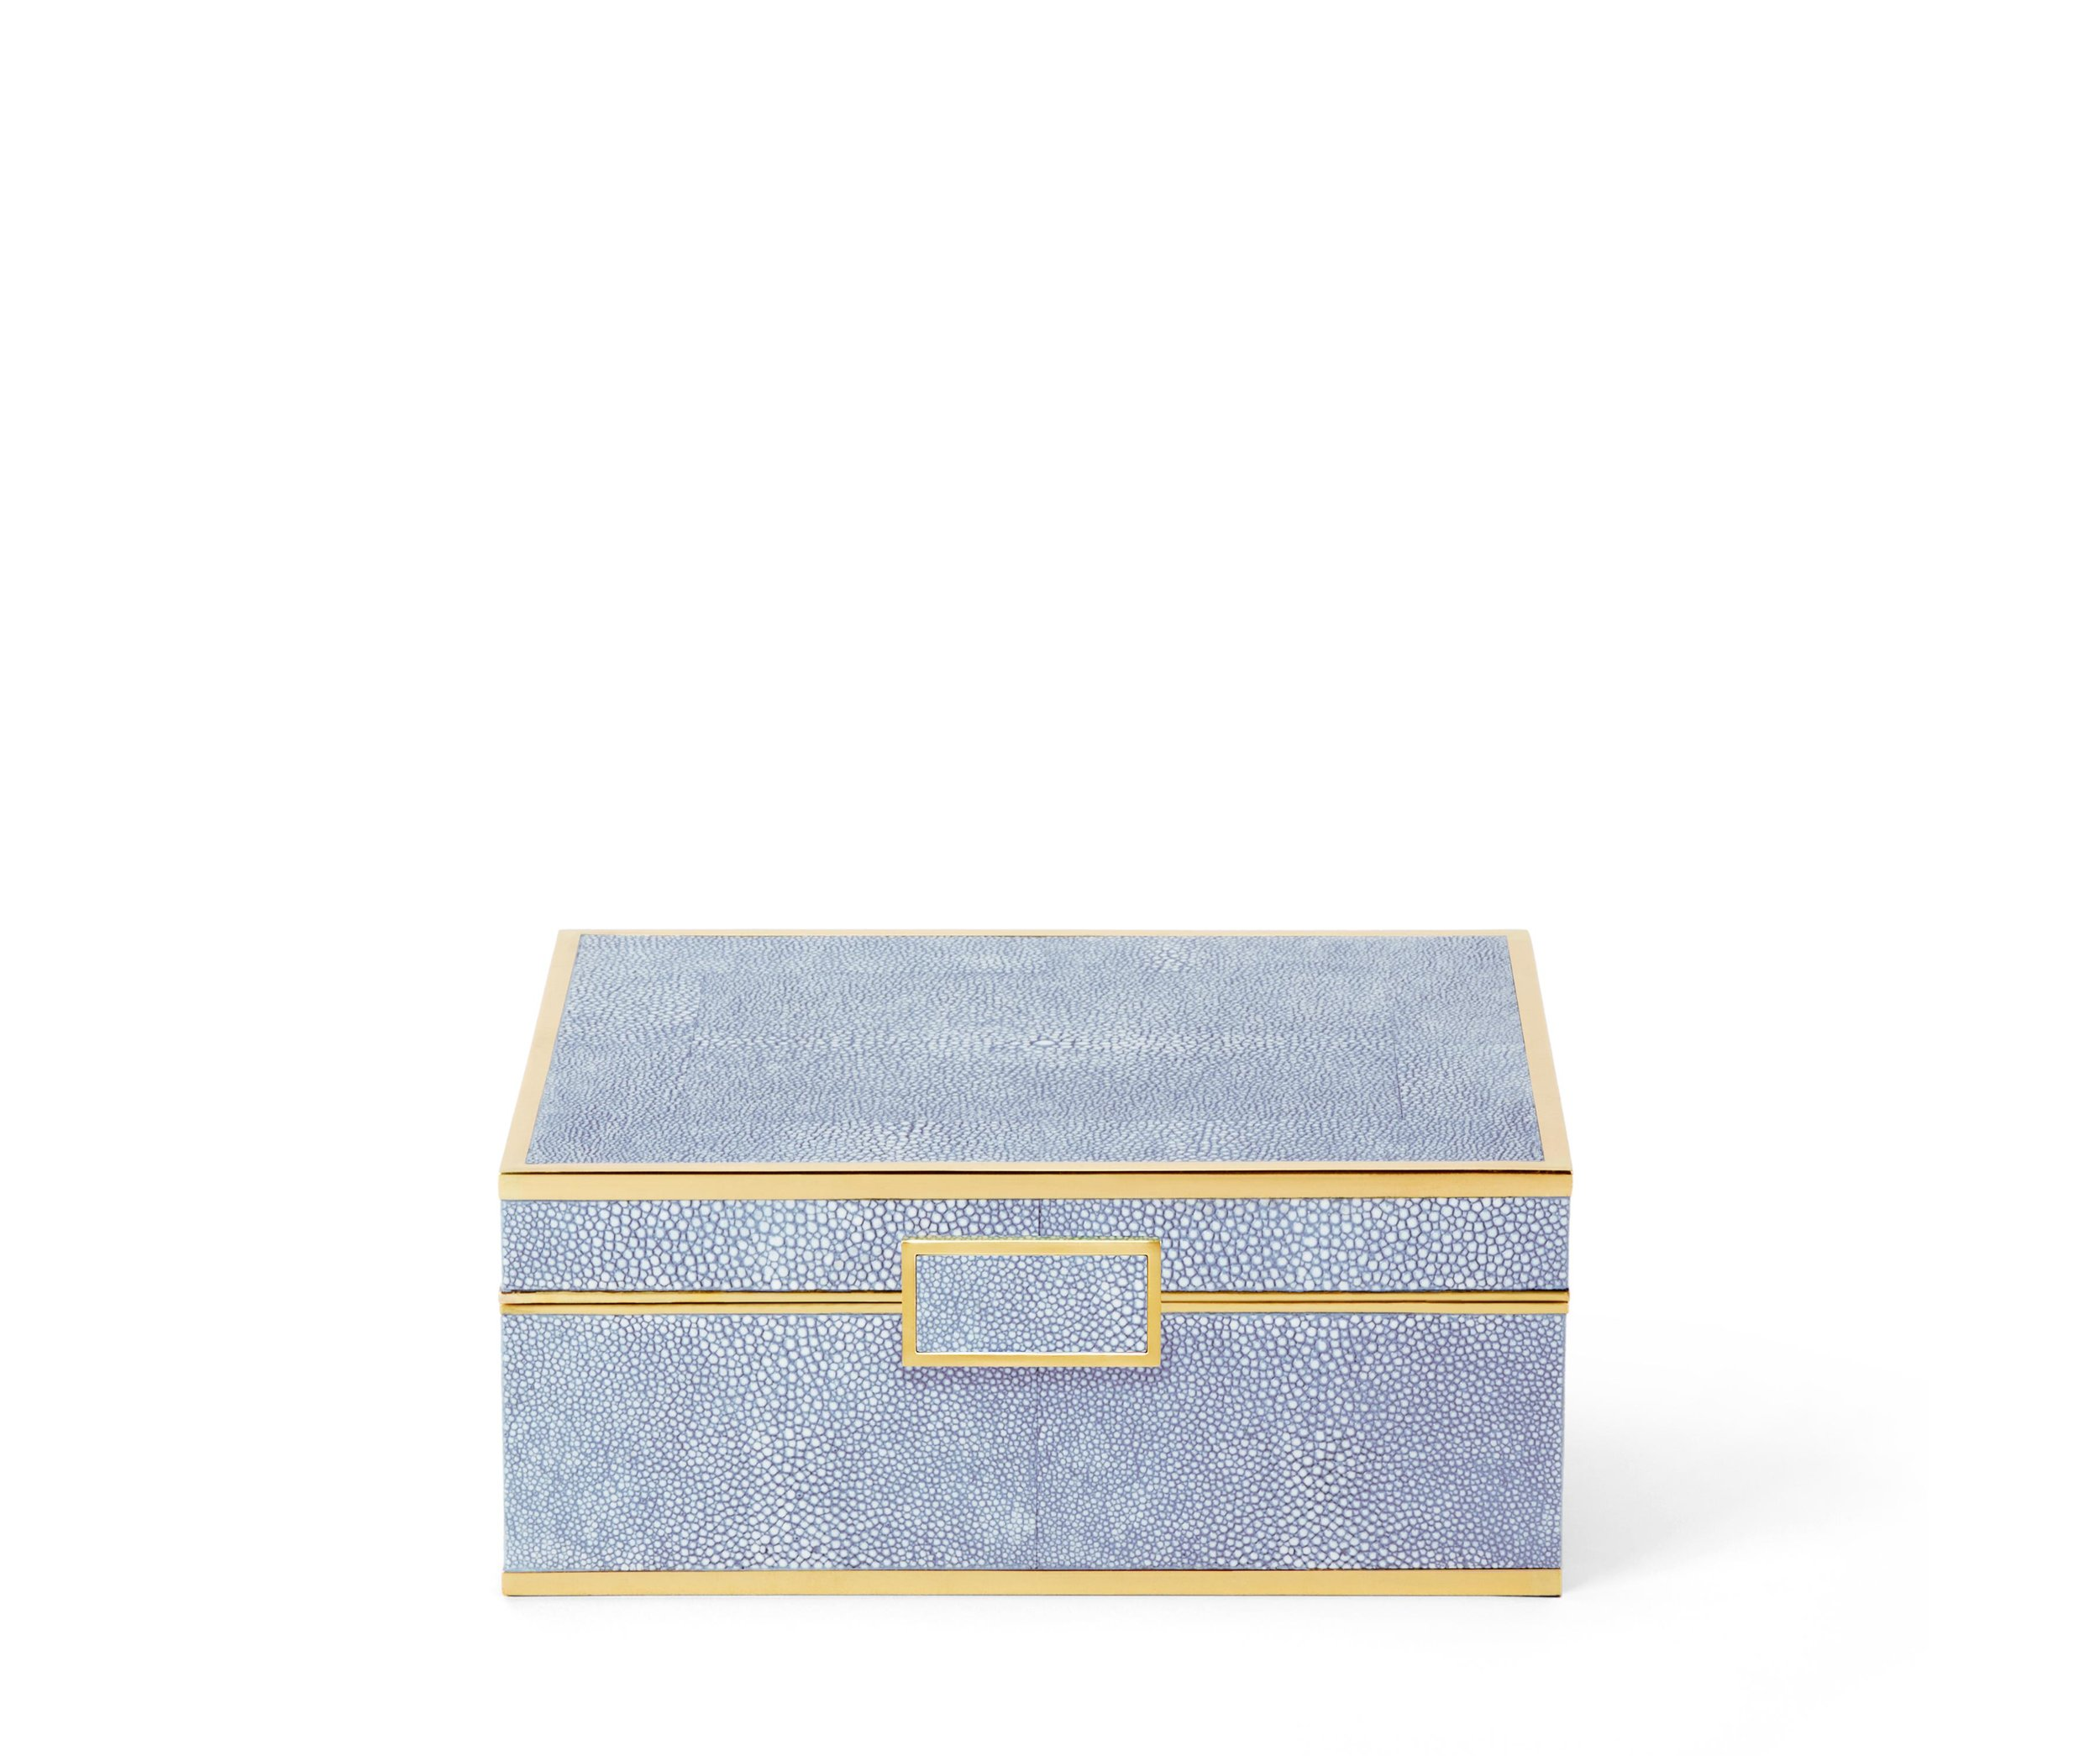 shagreen jewlery box.jpeg